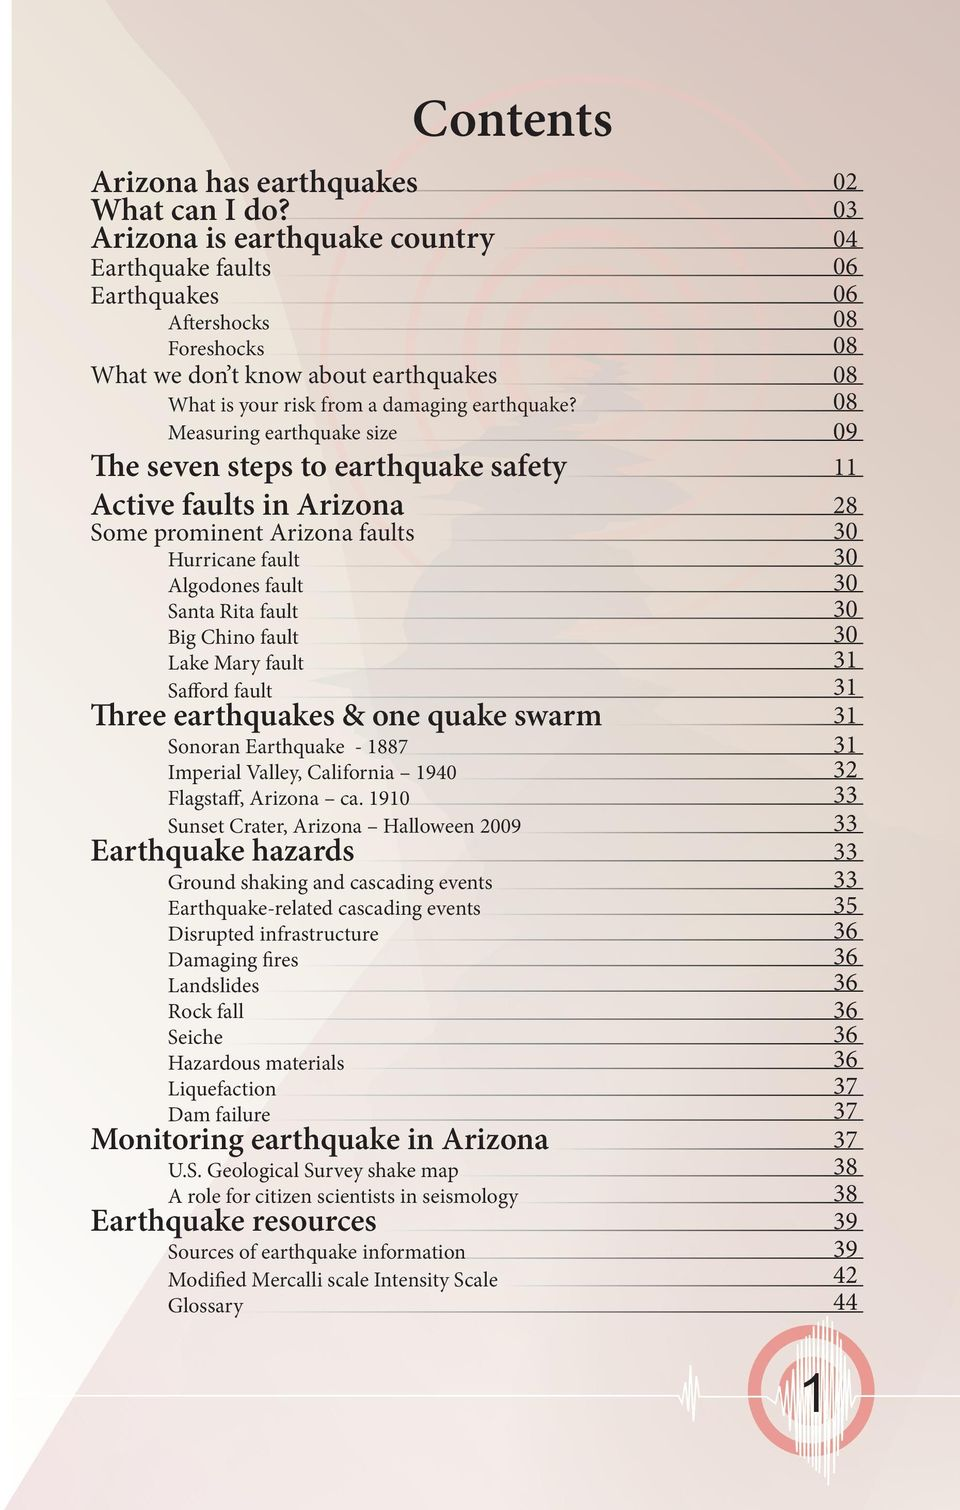 Measuring earthquake size The seven steps to earthquake safety Active faults in Arizona Some prominent Arizona faults Hurricane fault Algodones fault Santa Rita fault Big Chino fault Lake Mary fault